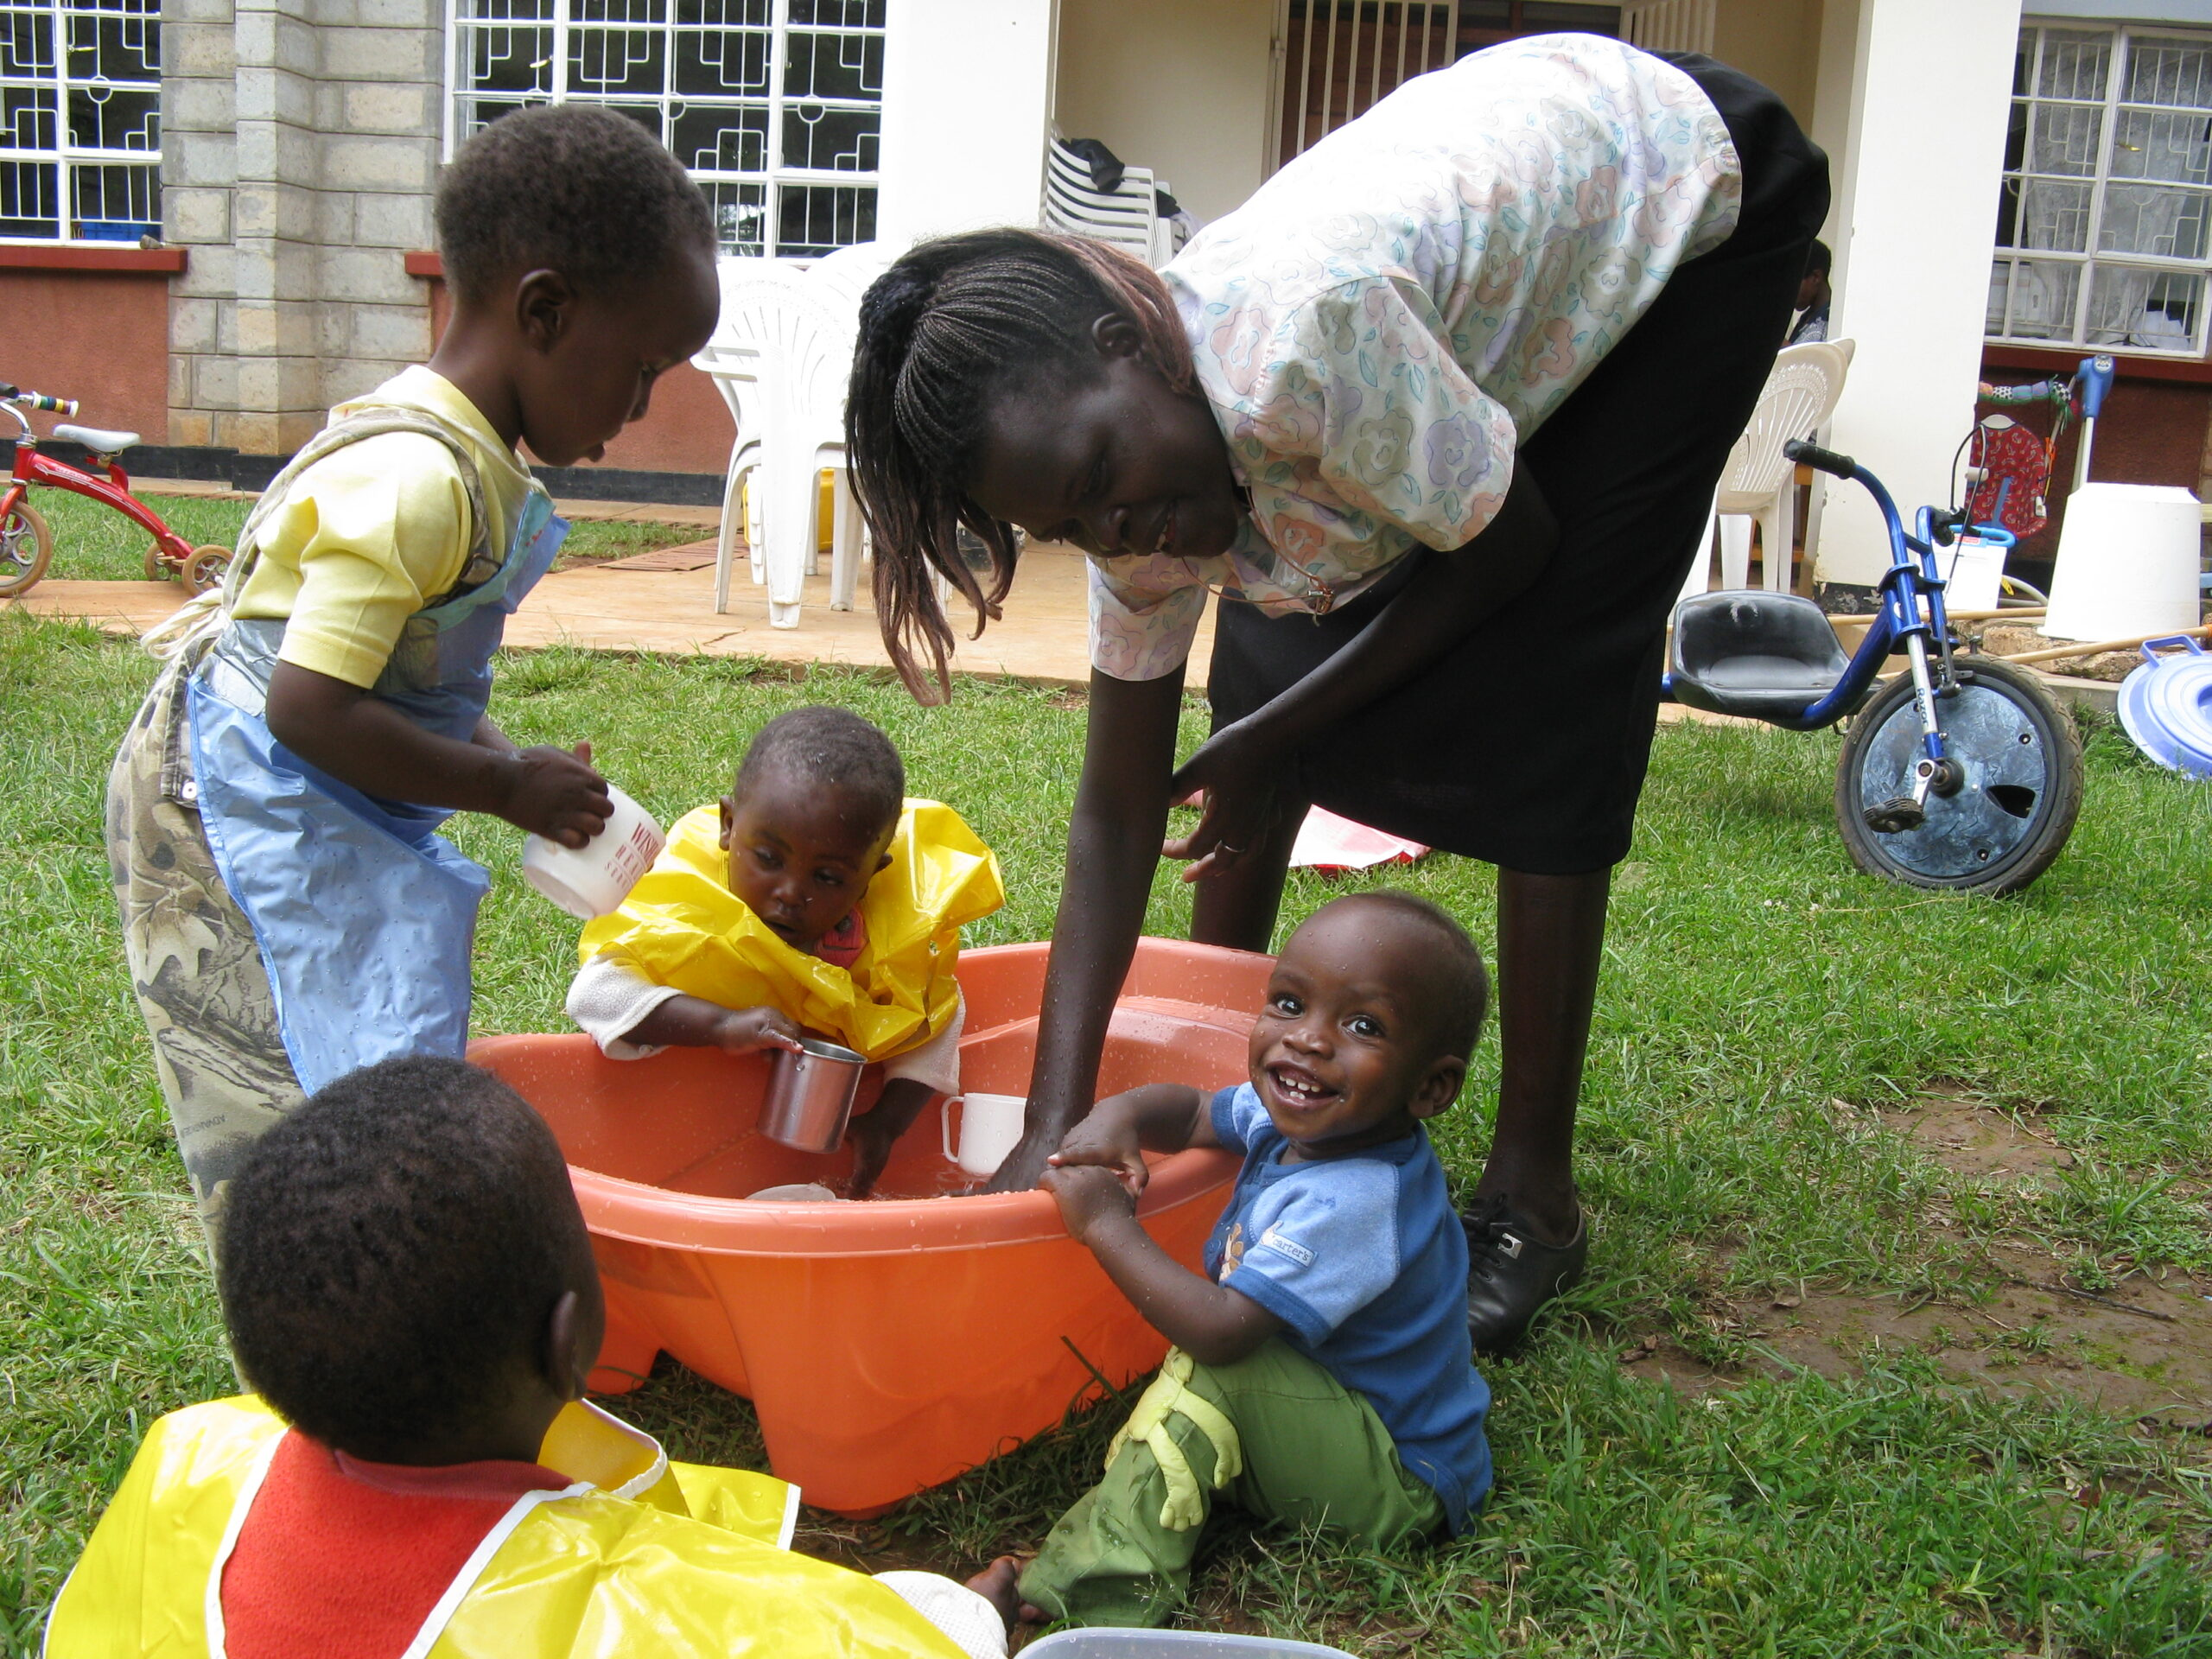 Several children of different ages and their adult helper are gathered around a big orange bowl filled with water, set on the grass in front of a building. They are having fun playing with various objects in the water.